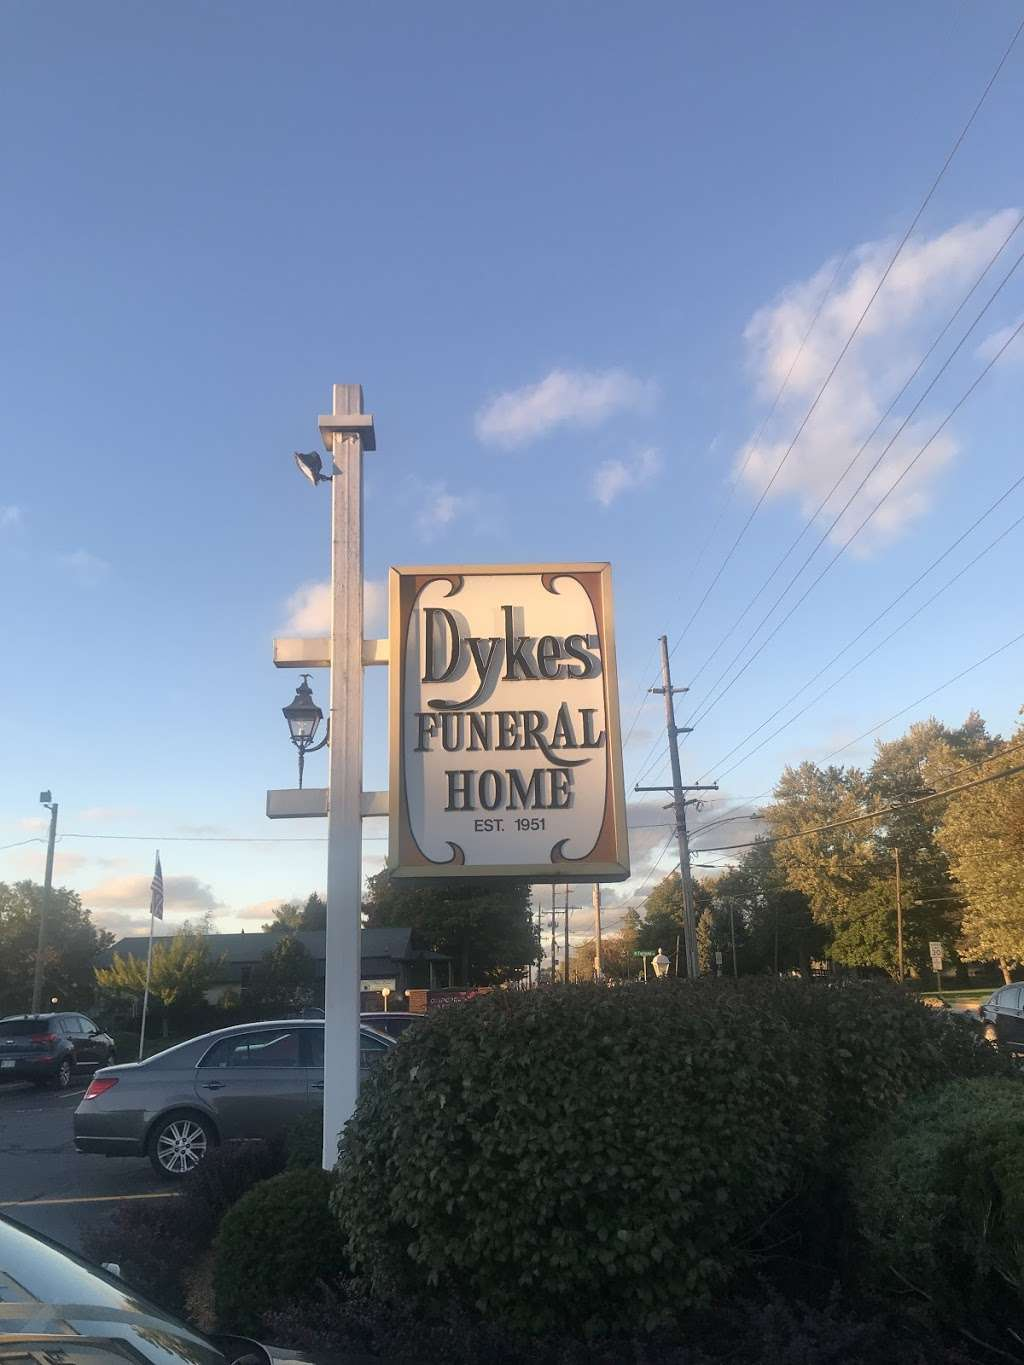 Dykes Funeral Home - funeral home    Photo 1 of 2   Address: 2305 N Campbell St, Valparaiso, IN 46385, USA   Phone: (219) 462-3125